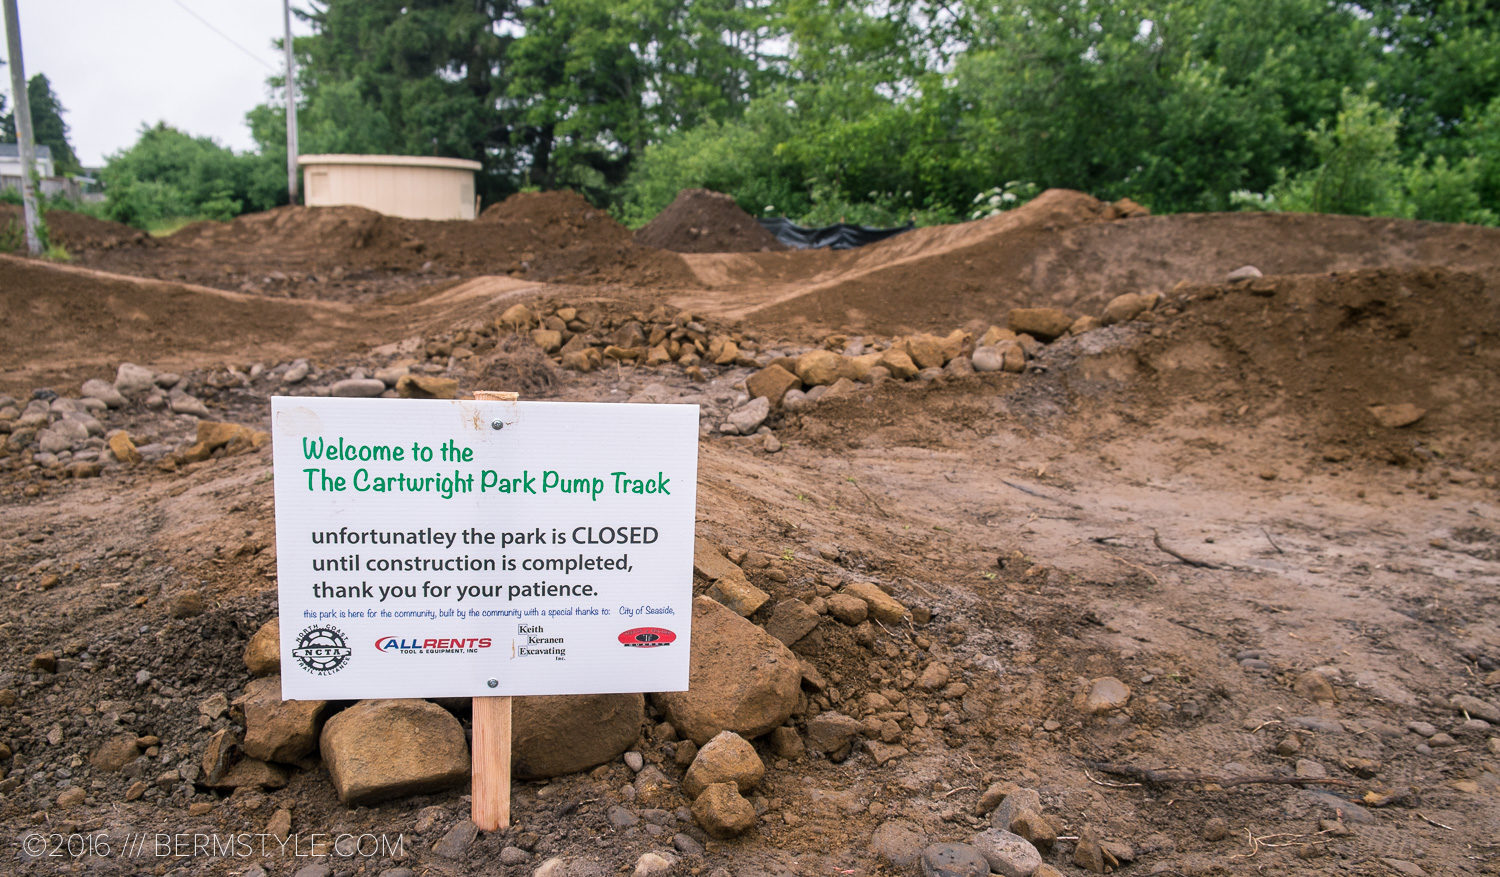 North Coast Trail Alliance: New Pump Track in Construction at Seaside, Oregon